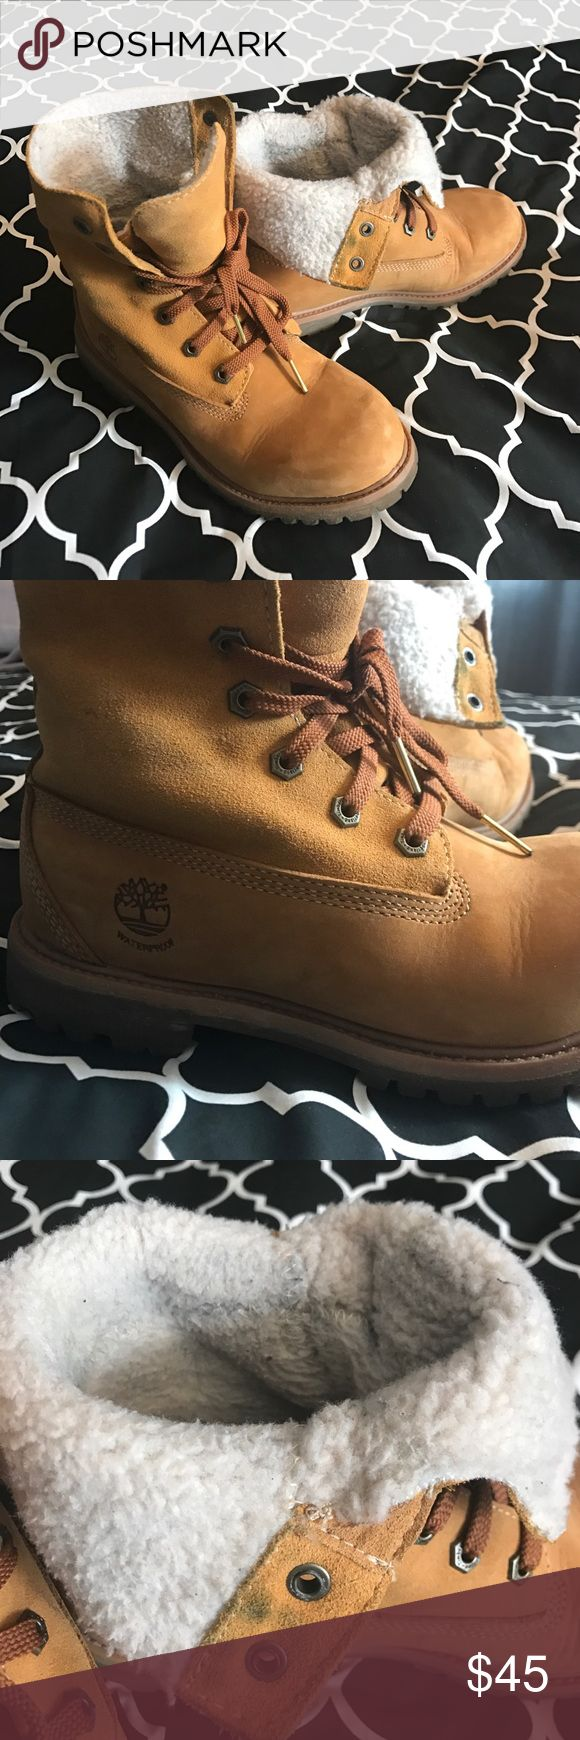 Timberland classic roll tops Timberland classic yellow boot roll tops. Versatile and comfortable. Some signs of wear on the inner lining. Waterproof. Timberland Shoes Lace Up Boots